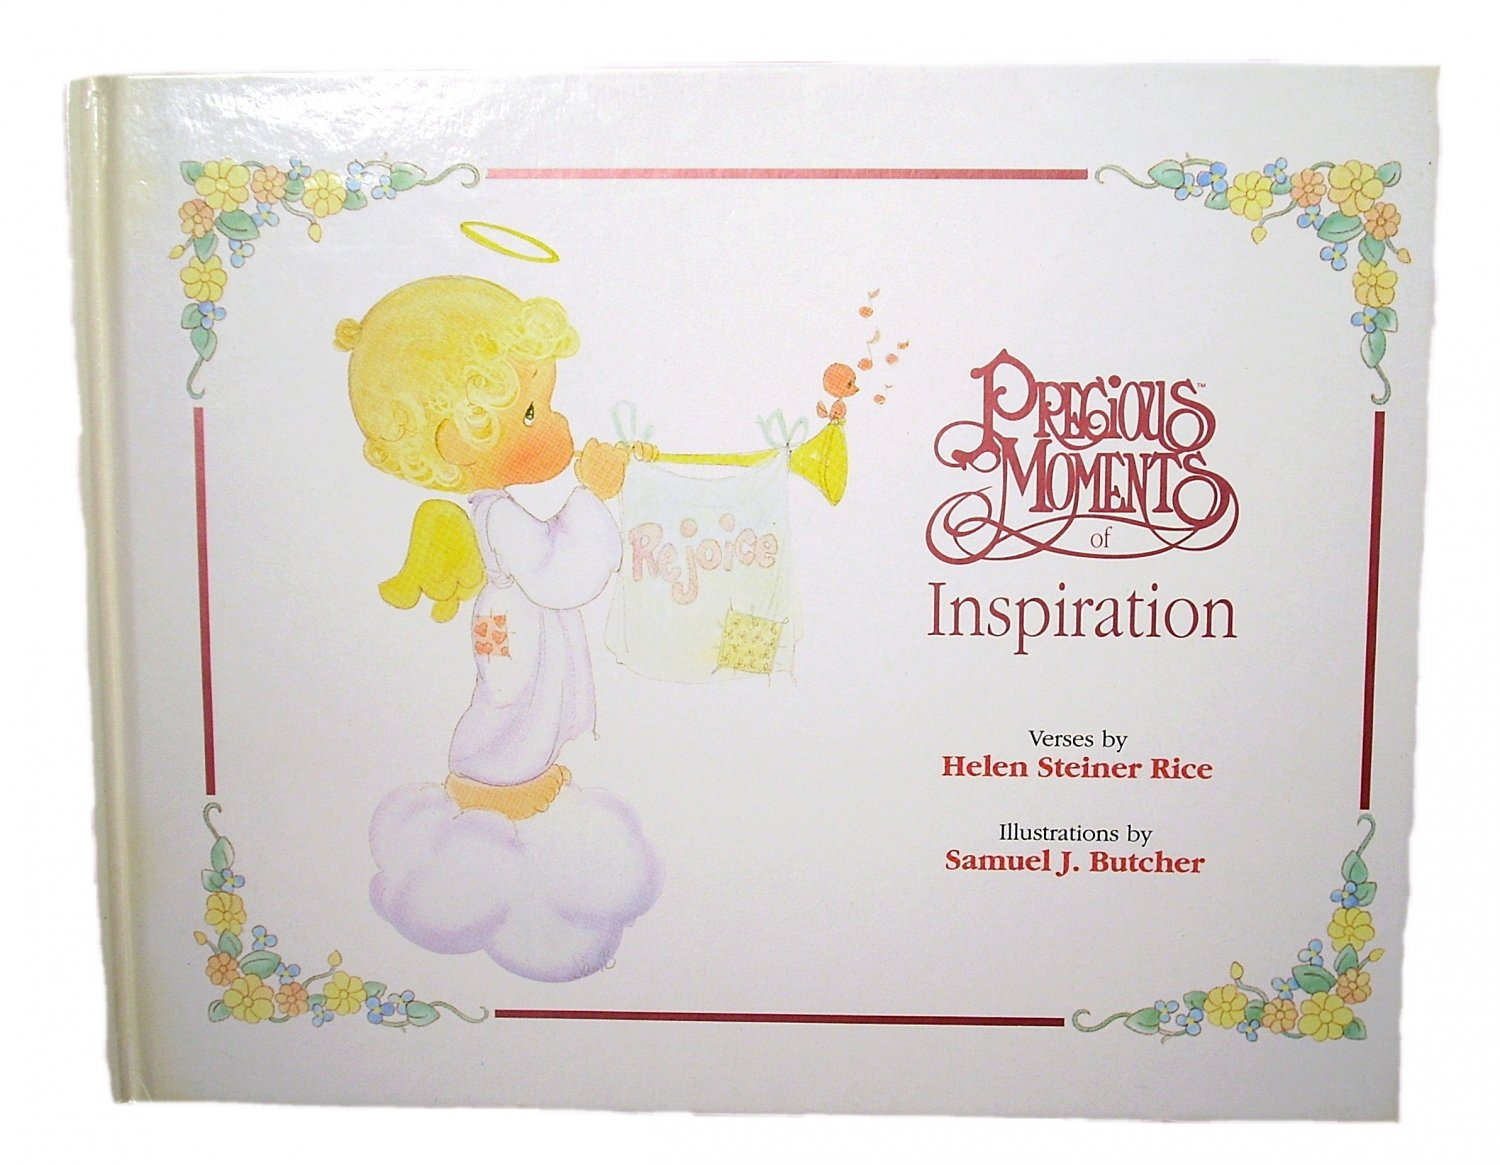 Precious Moments of Inspiration by Helen Steiner Rice 1993 Hardcover